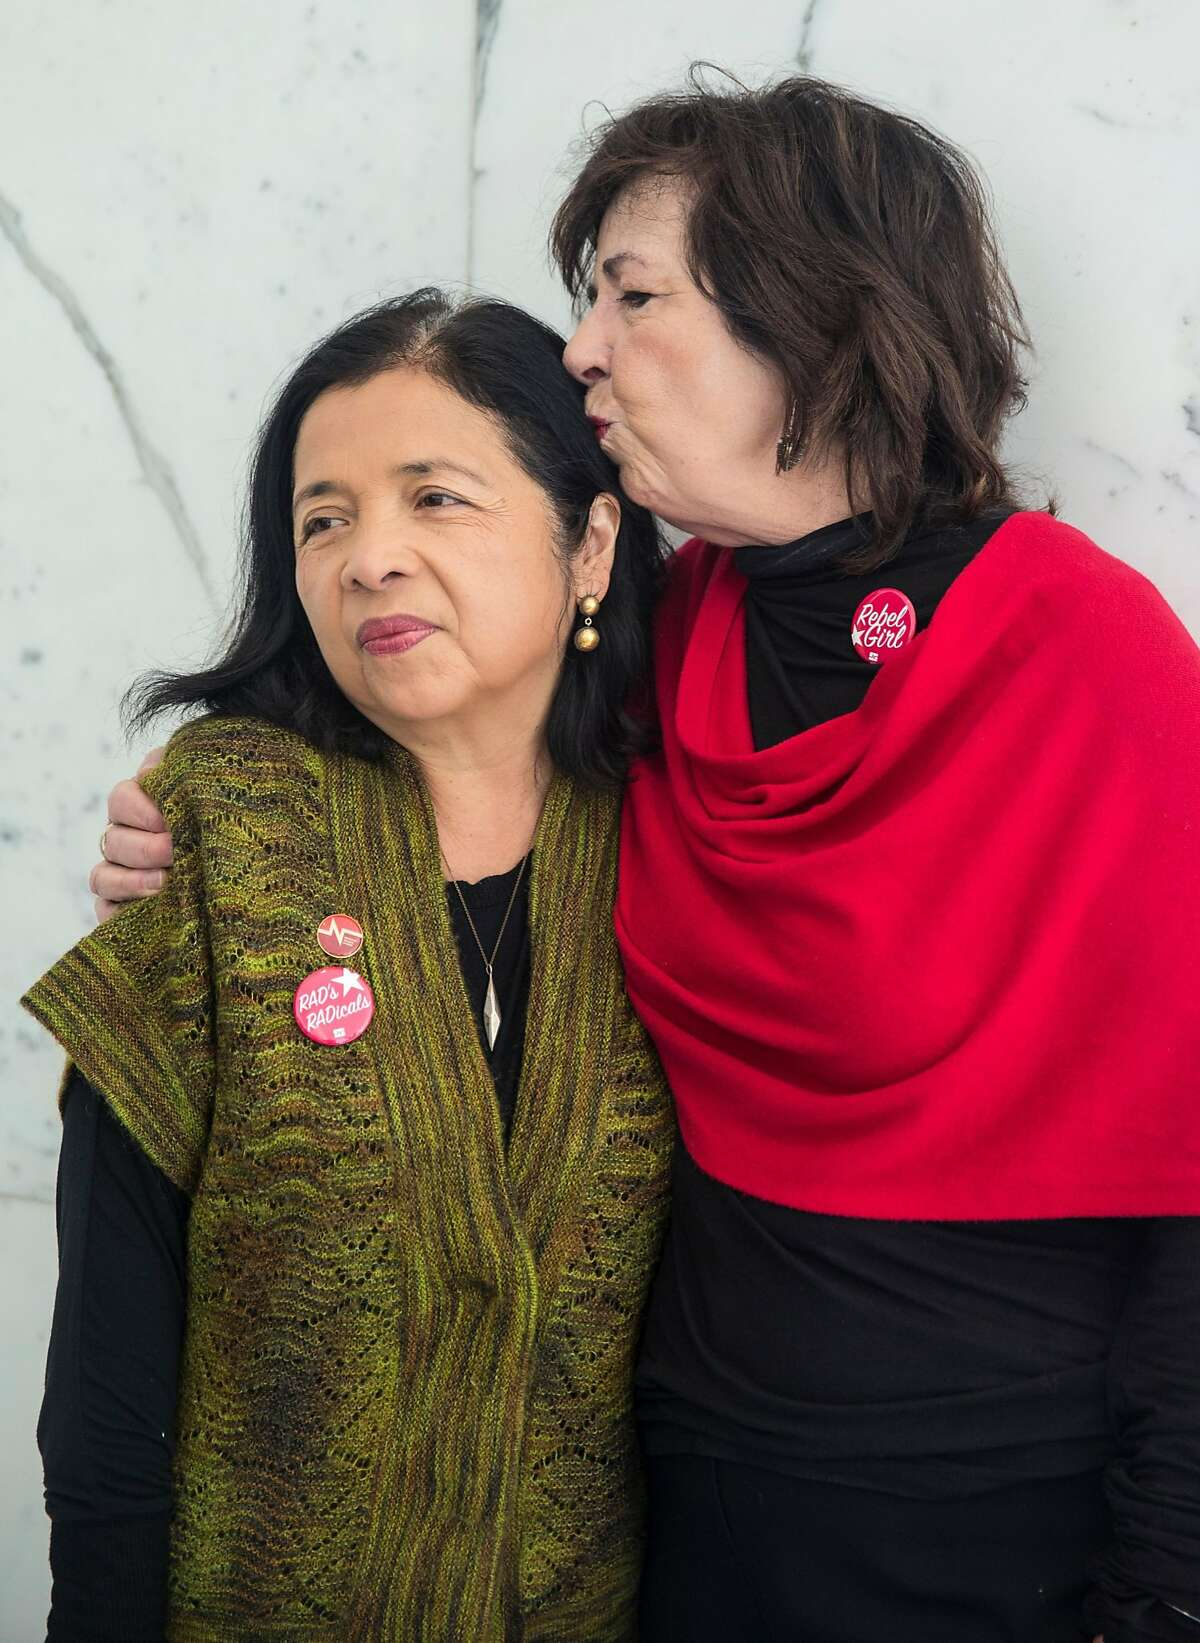 Executive Director of the California Nurses Association and National Nurses United RoseAnn DeMoro, right, kisses Associate Executive Director of the California Nurses Association and National Nurses United Bonnie Castillo before a retirement party held for DeMoro at the CNA-NNU Headquarters Friday, March 2, 2018 in Oakland, Calif.